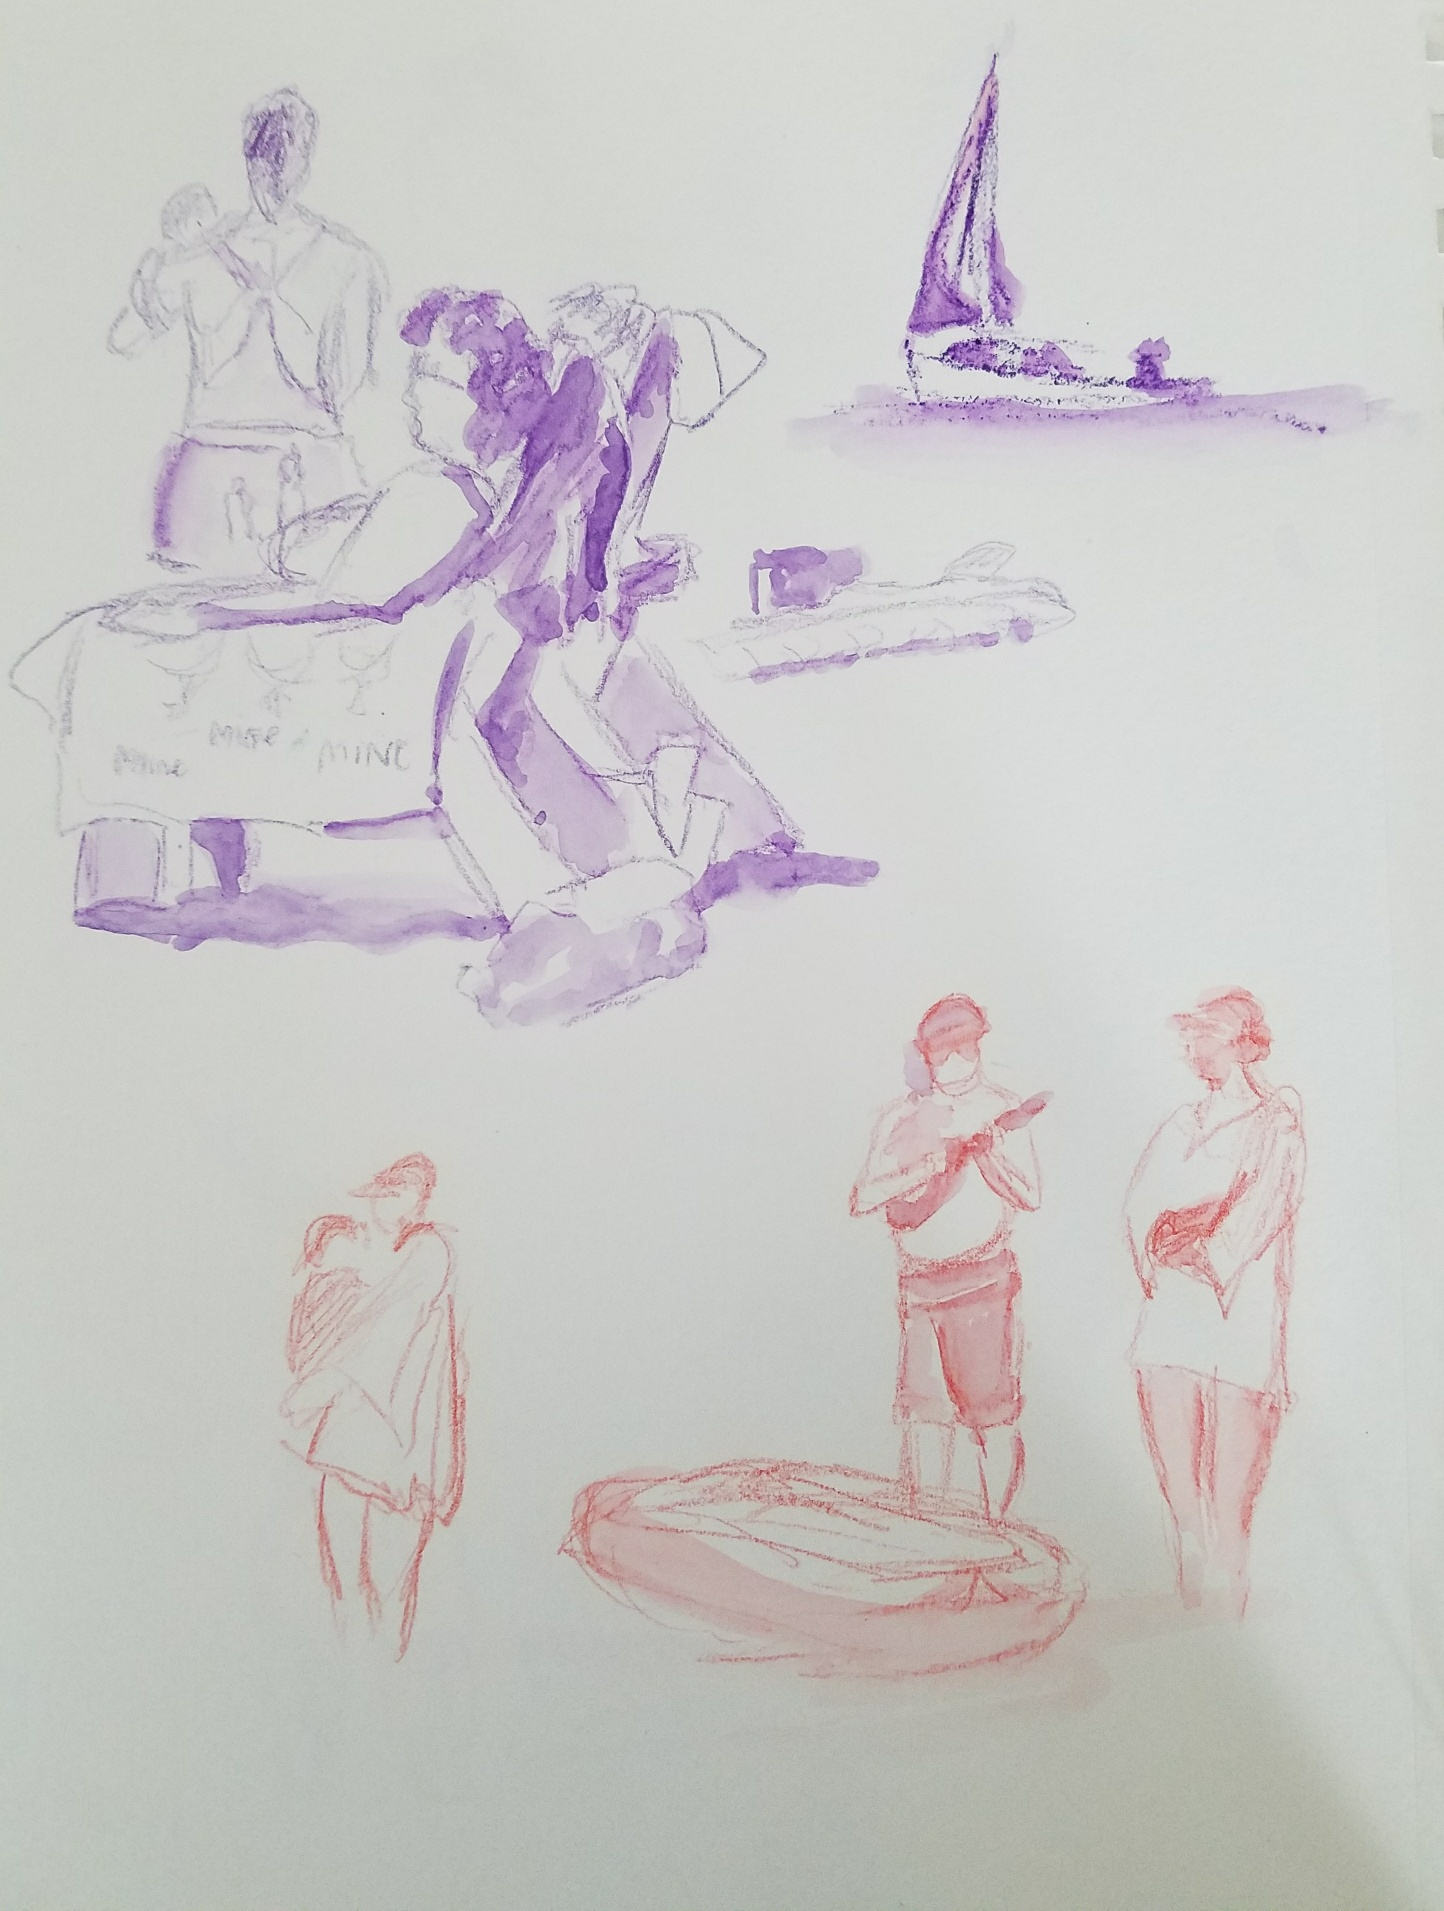 Some people sketches from the beach area